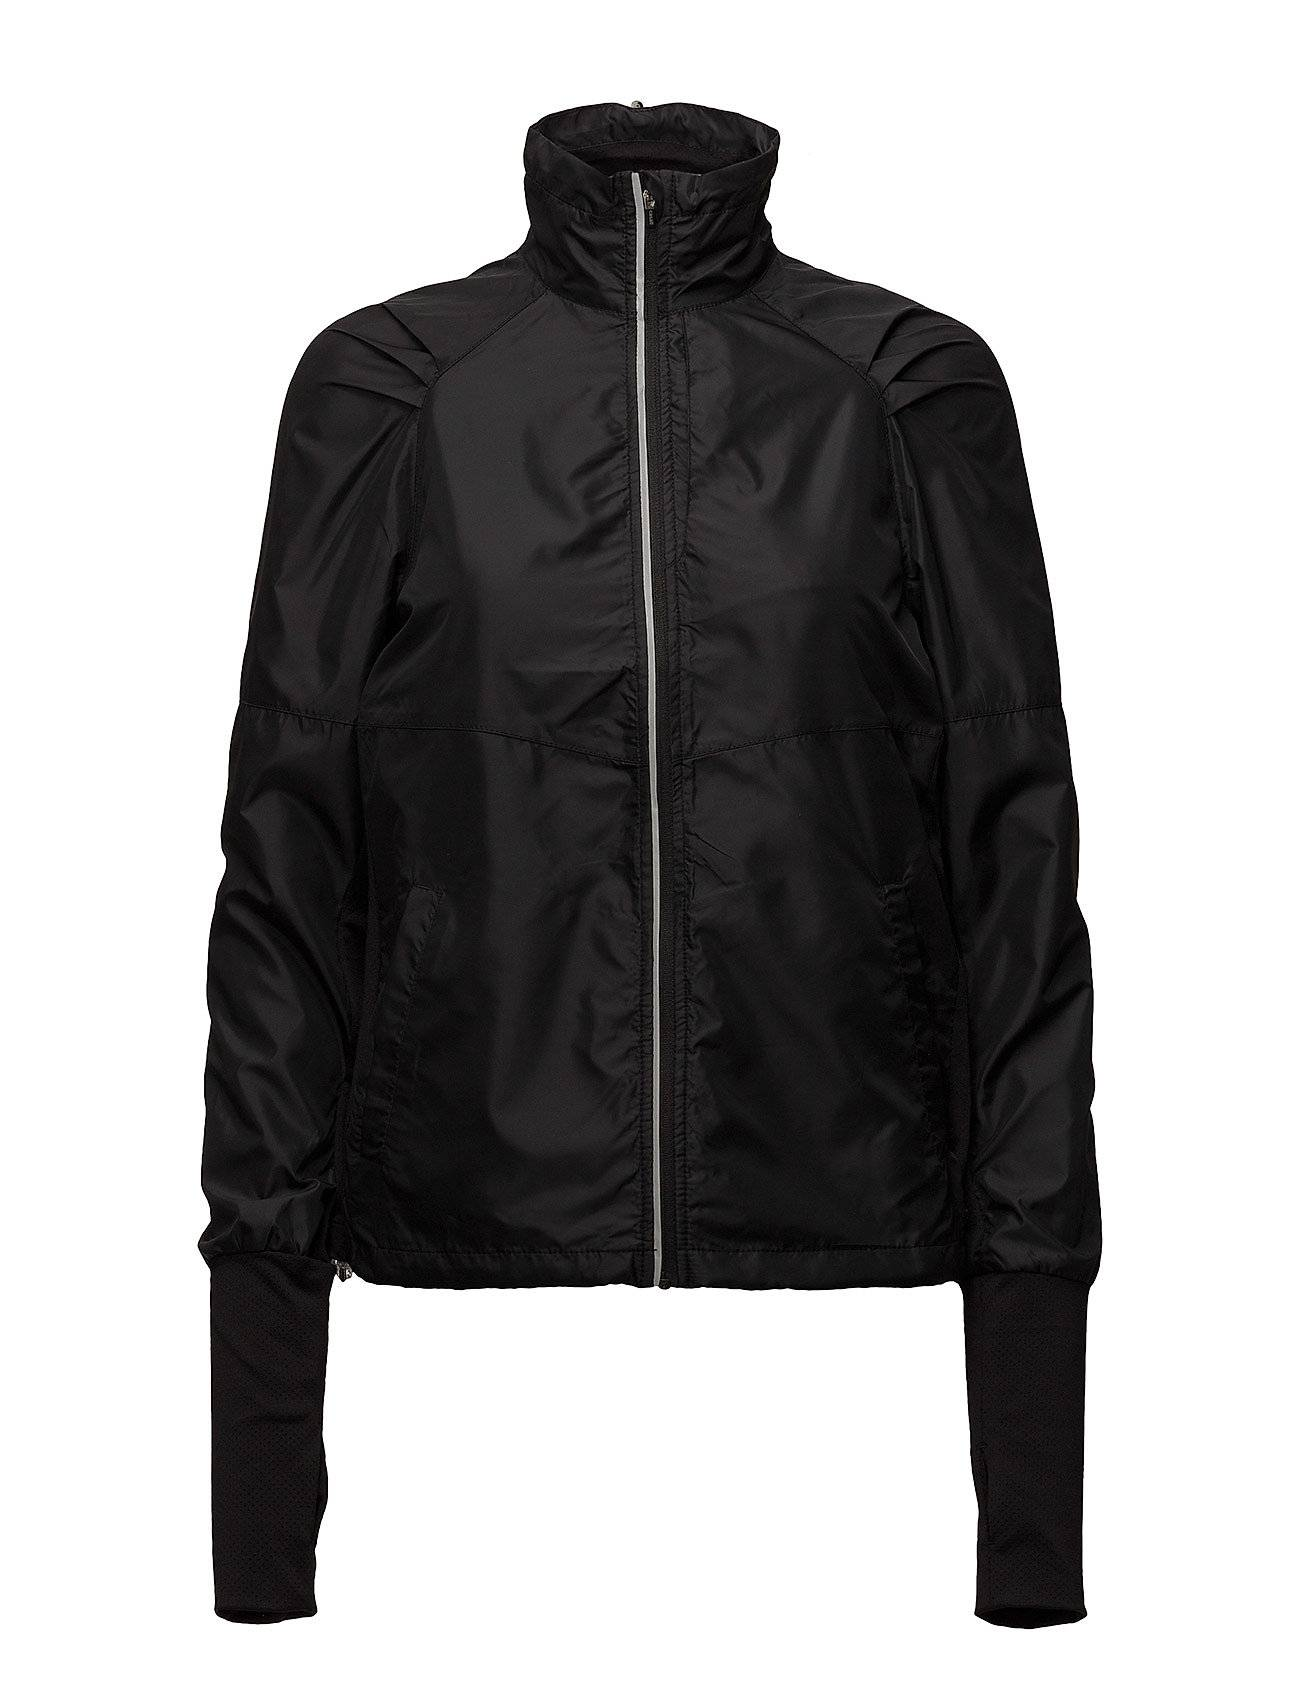 Casall Wind Jacket